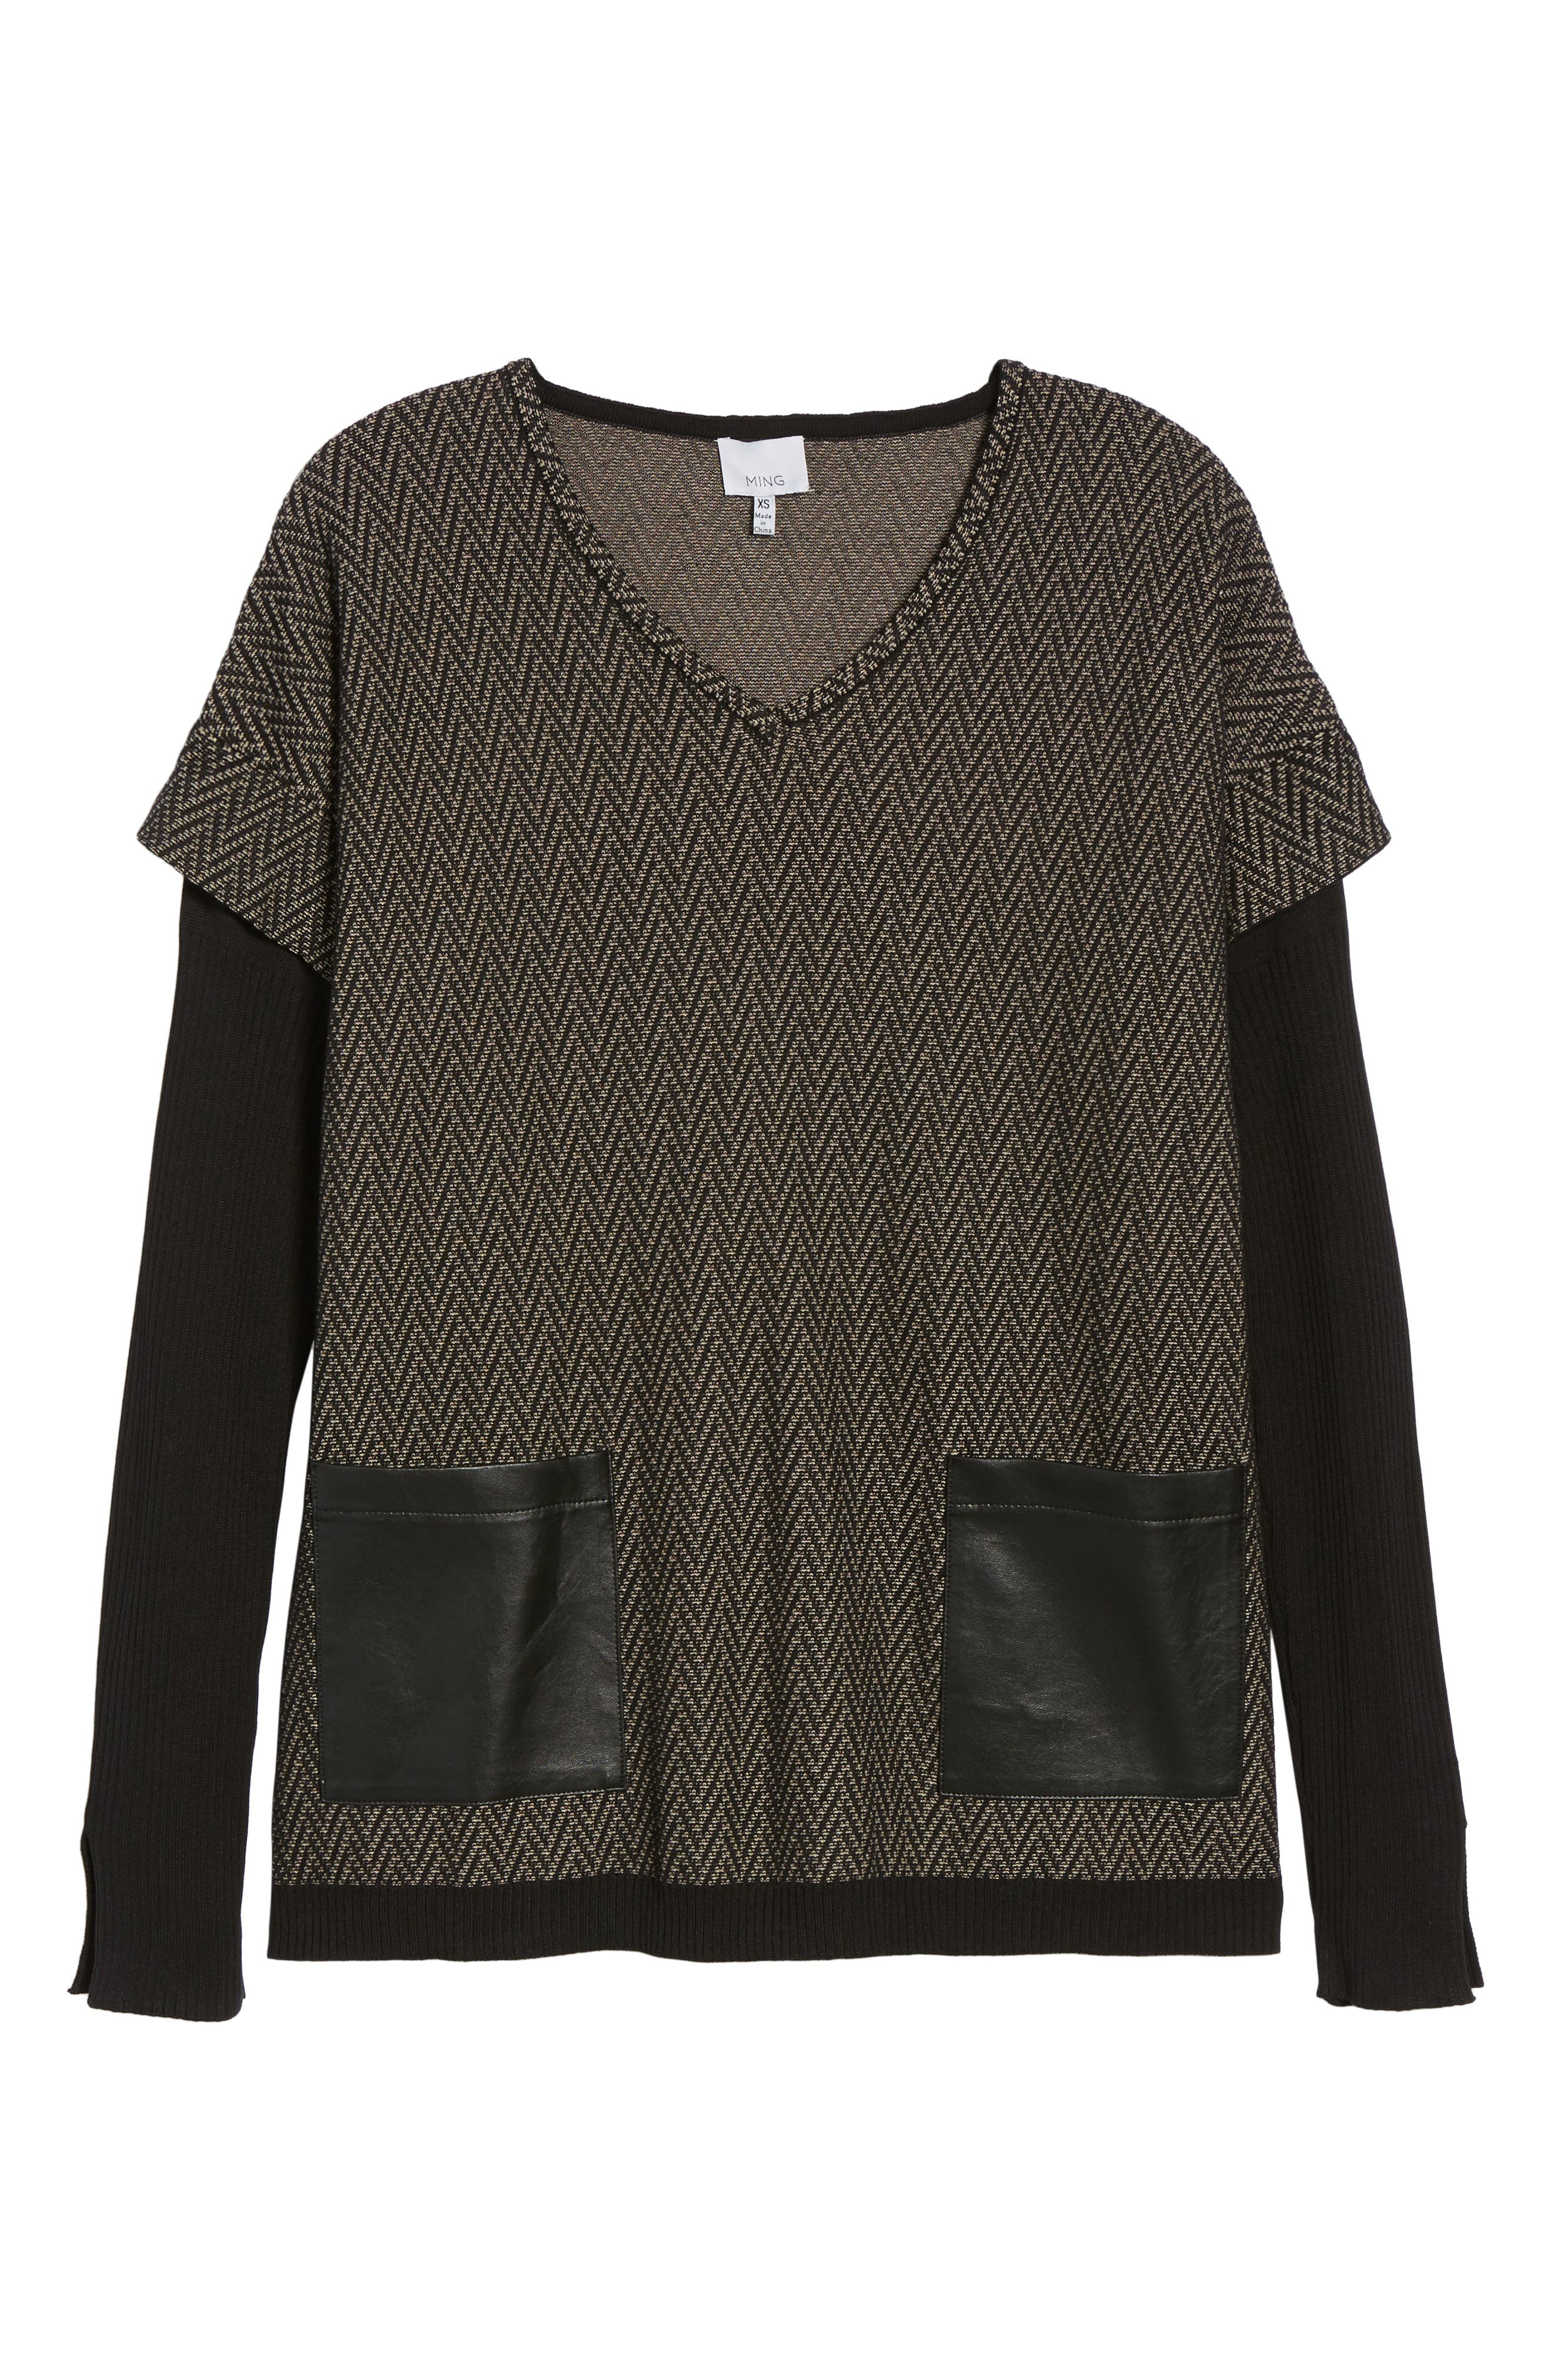 Layered Look Sweater,                             Alternate thumbnail 6, color,                             Ash/ Black